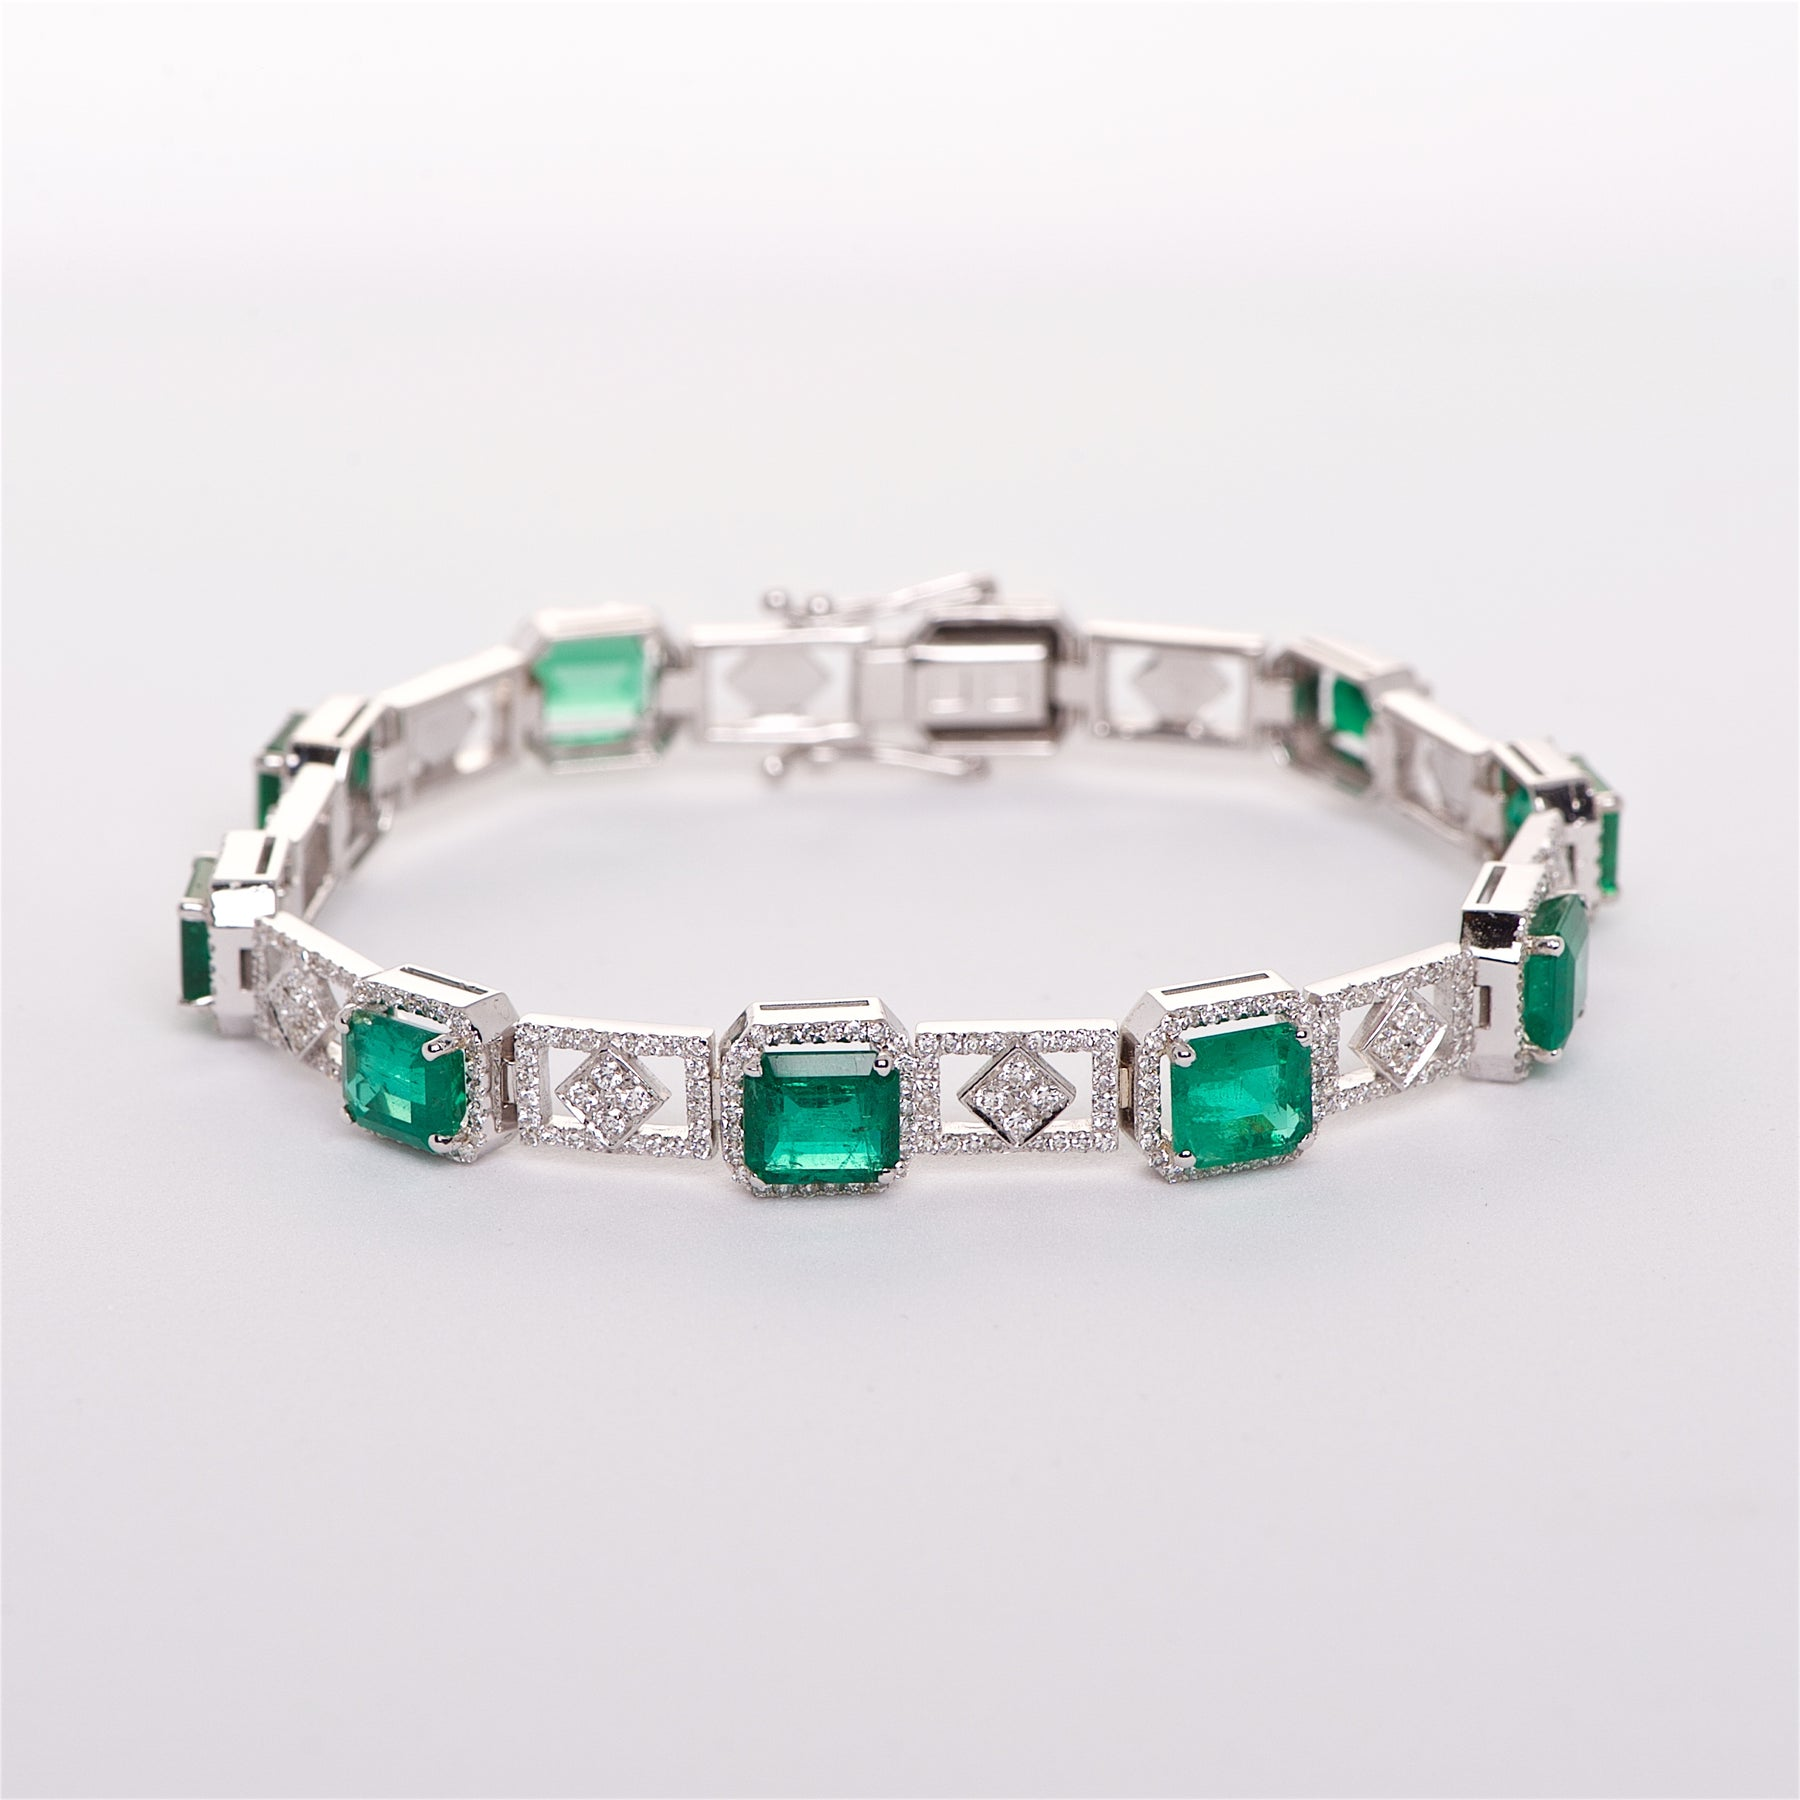 The Fiona - 18K Colombian Emerald and Diamond Bracelet